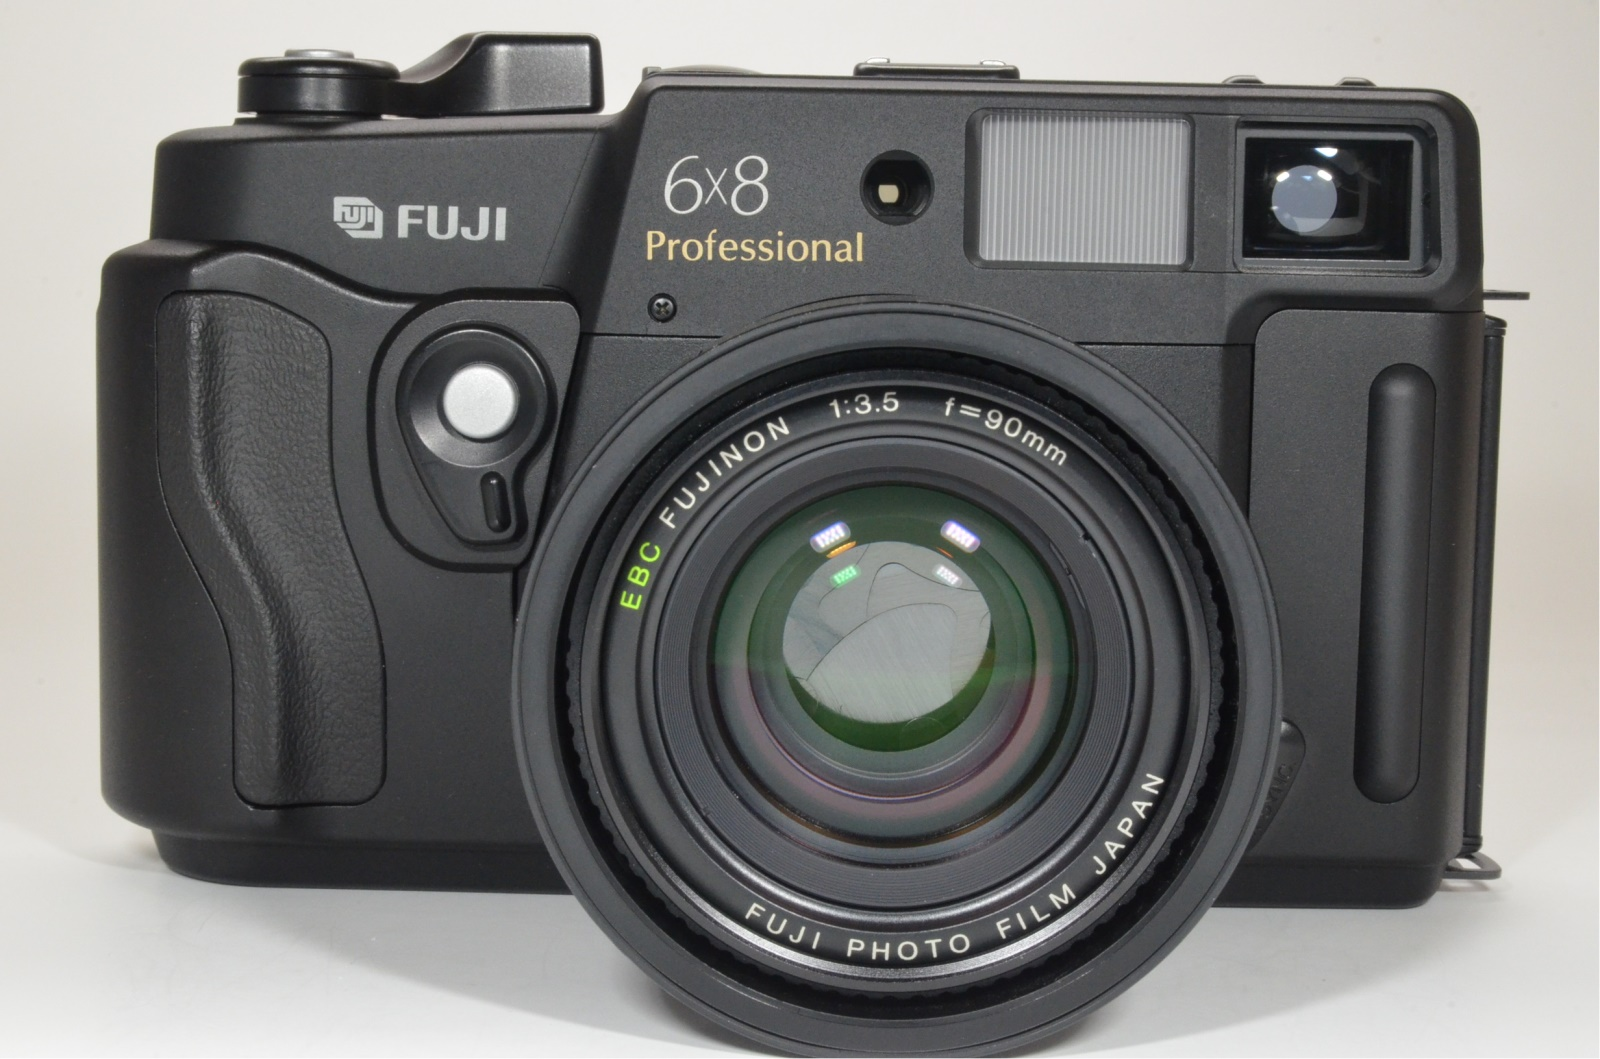 fuji fujifilm gw680iii 90mm f3.5 count 025 medium format camera cla'd recently shooting tested